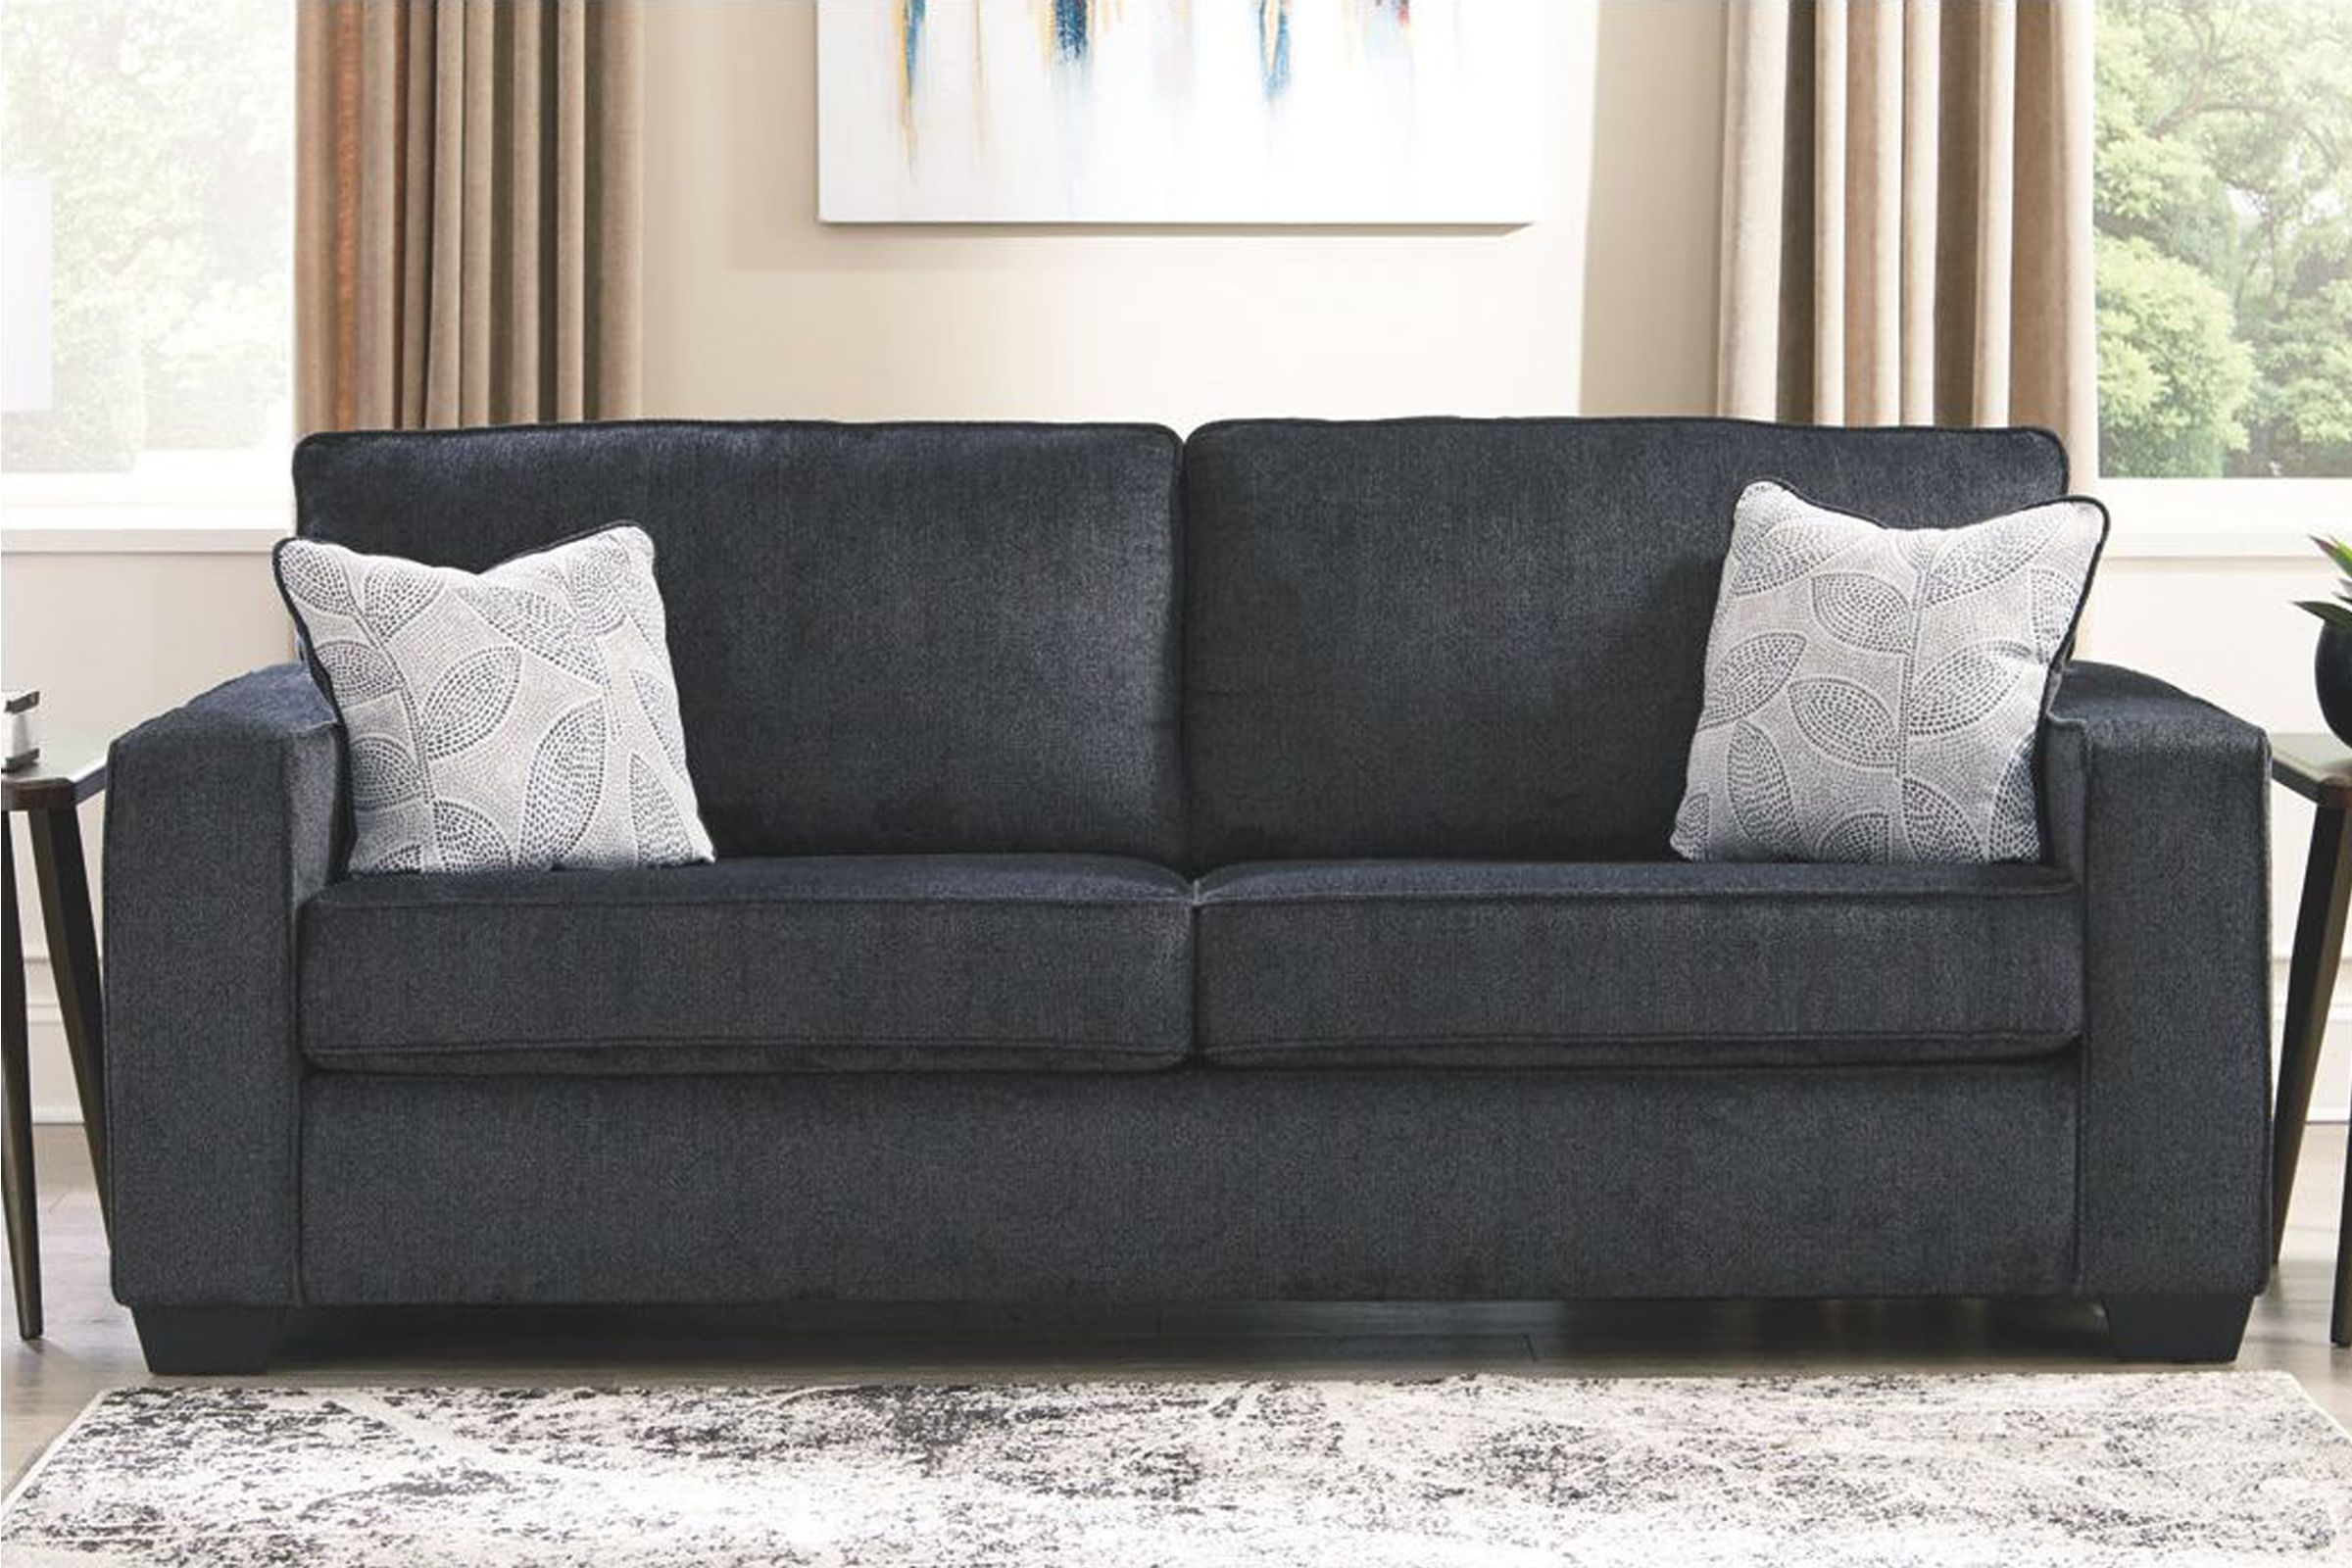 Dark grey (with a blue undertone) sofa with square arms and 2 toss pillows with blue plant pattern